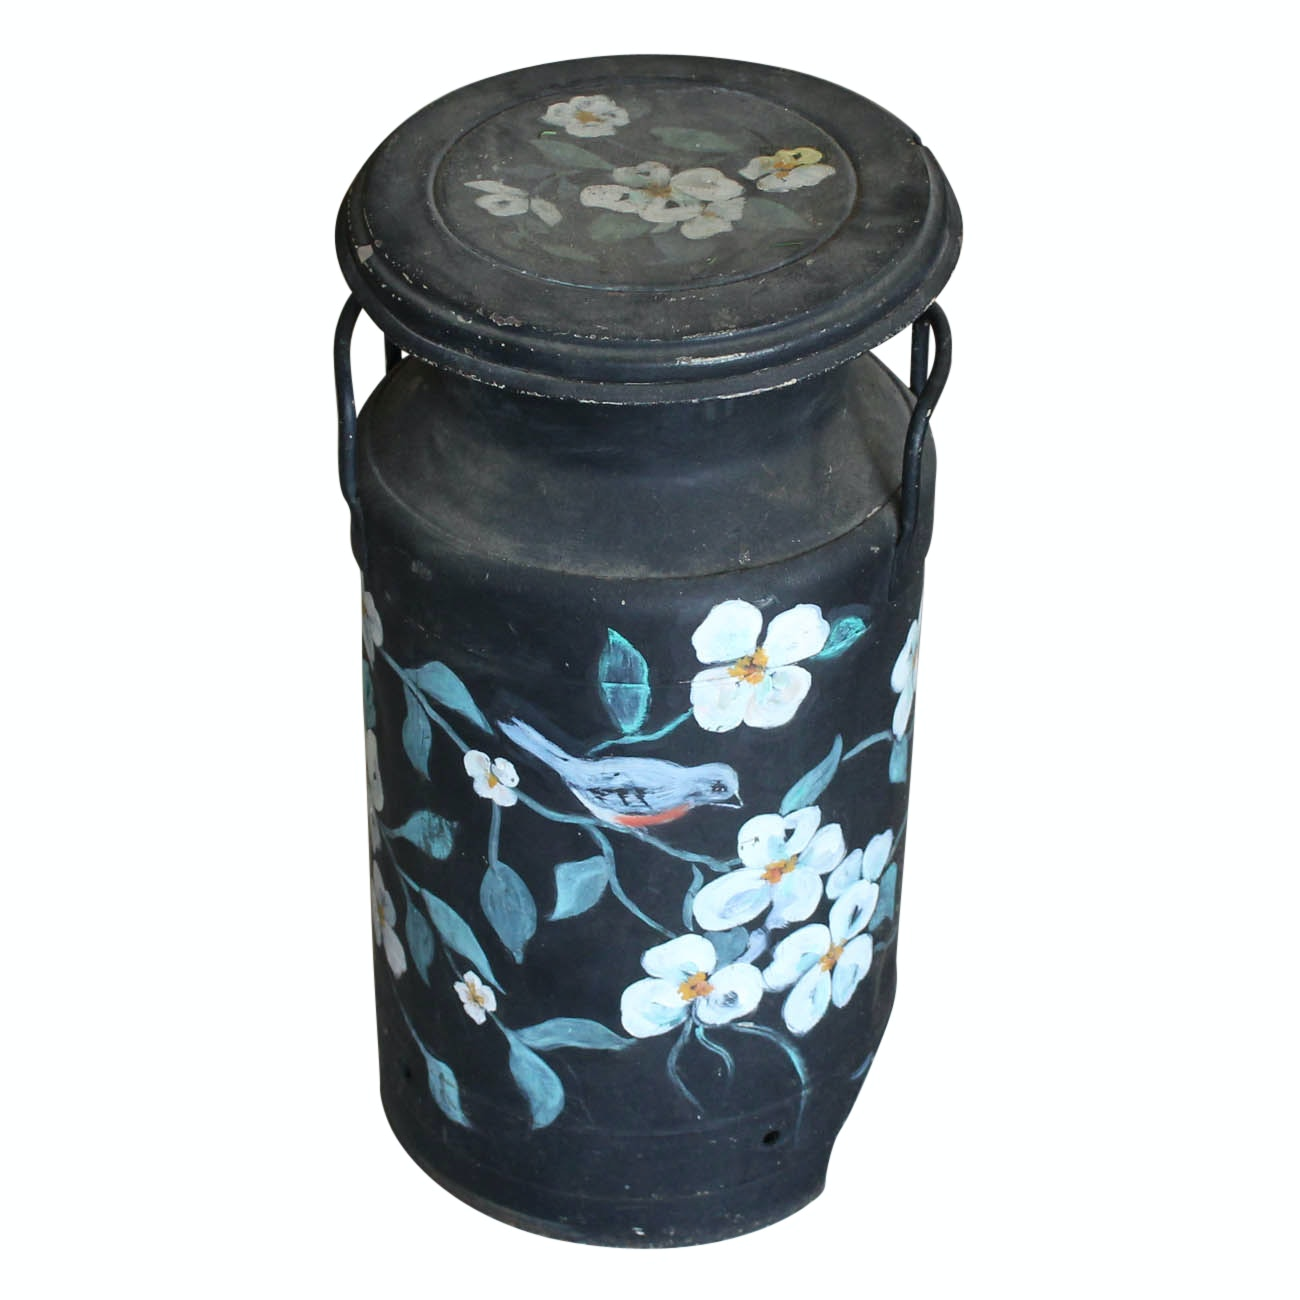 Vintage Hand Painted Metal Jug